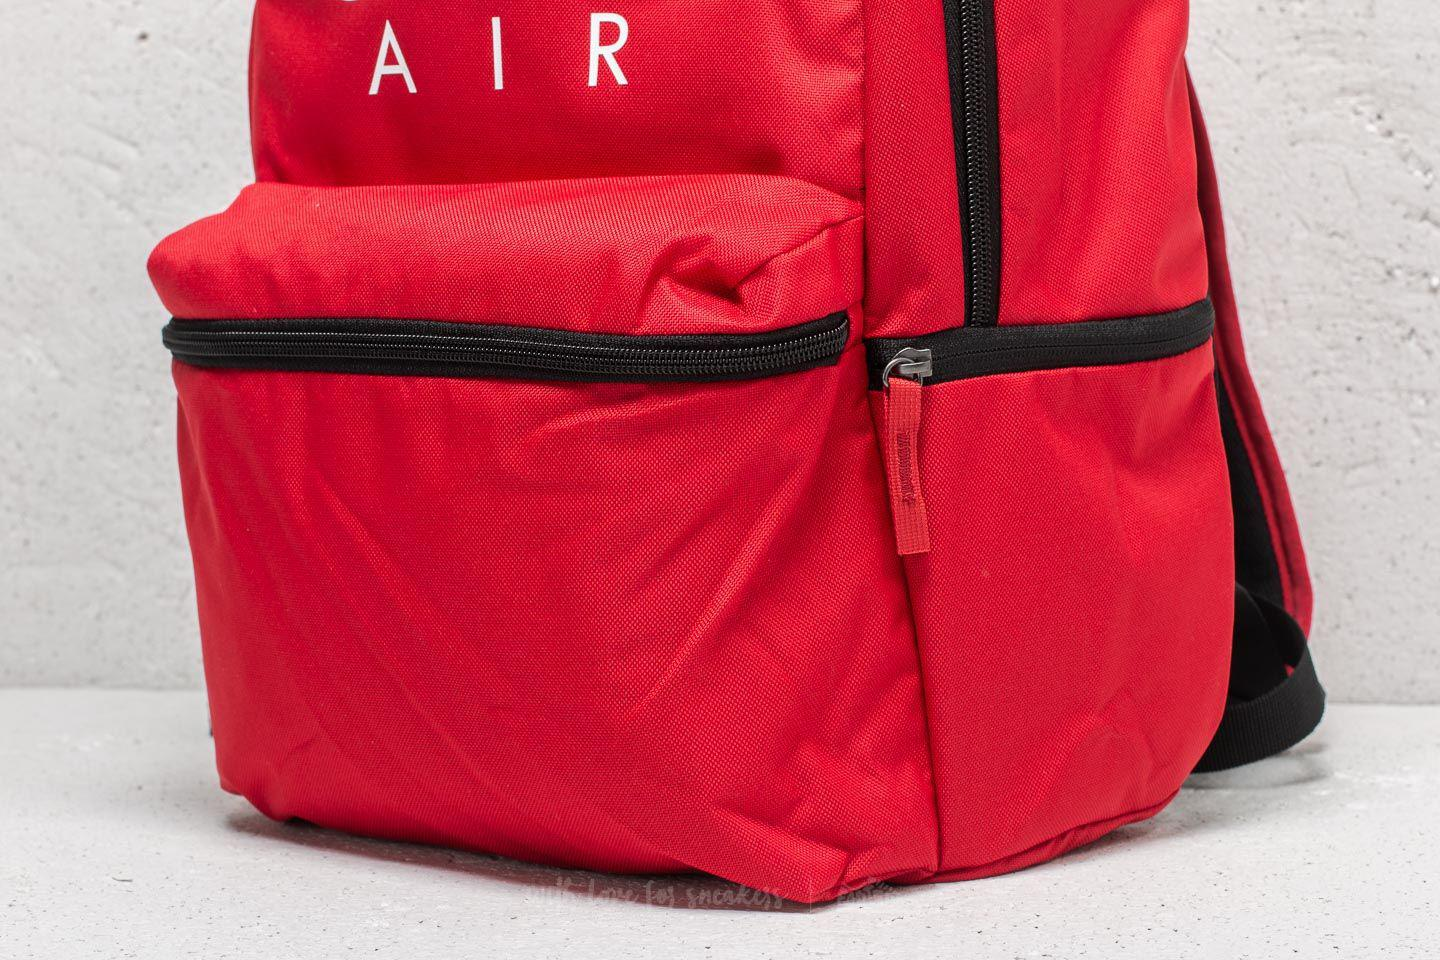 Lyst nike air backpack red white in red for men jpg 1440x960 Nike air  backpack red 6b5e2a639f1b6